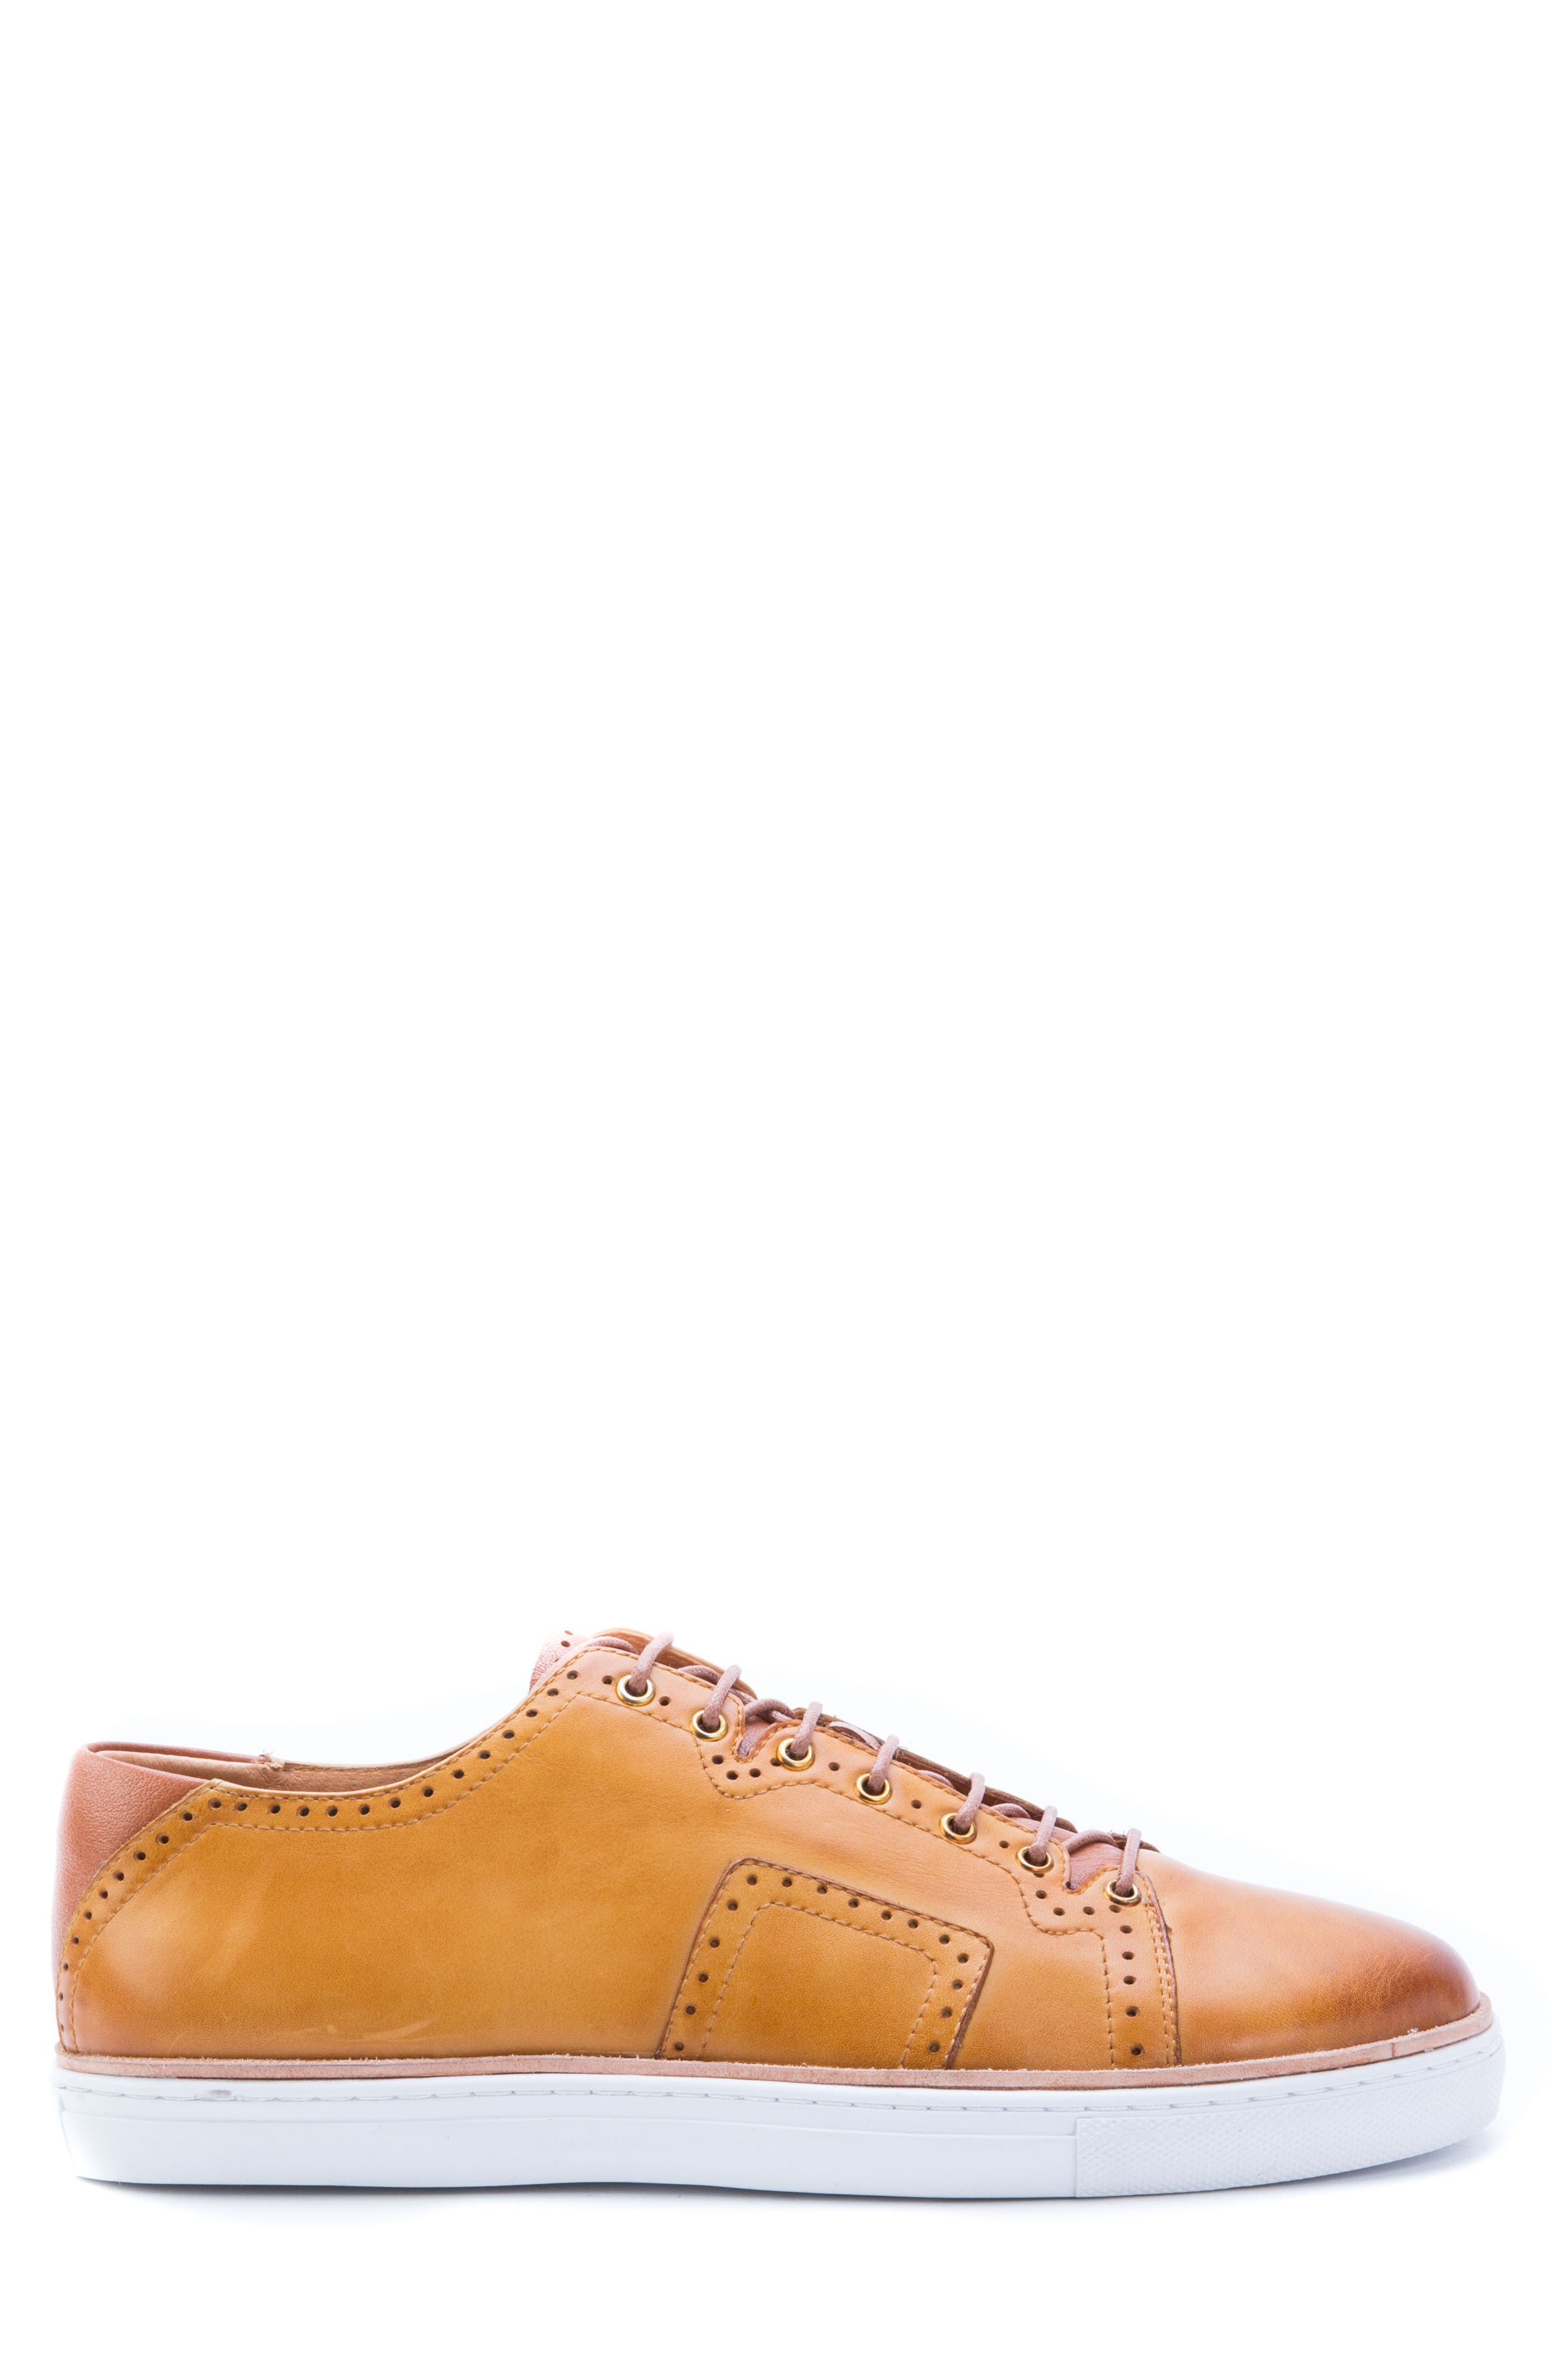 Marti Low Top Sneaker,                             Alternate thumbnail 3, color,                             Cognac Leather